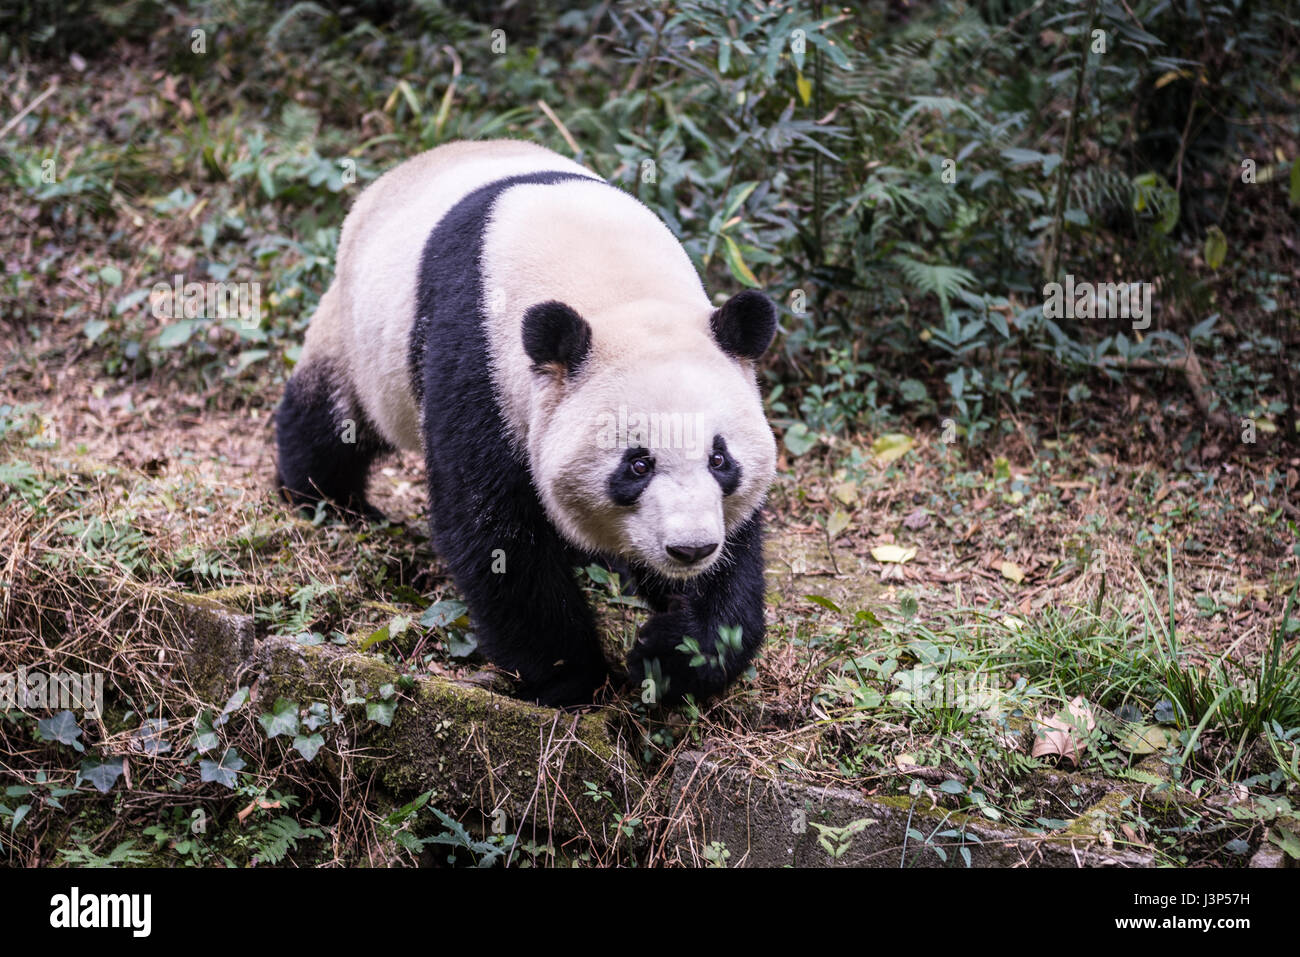 Giant panda, photographed in Sichuan, China - Stock Image